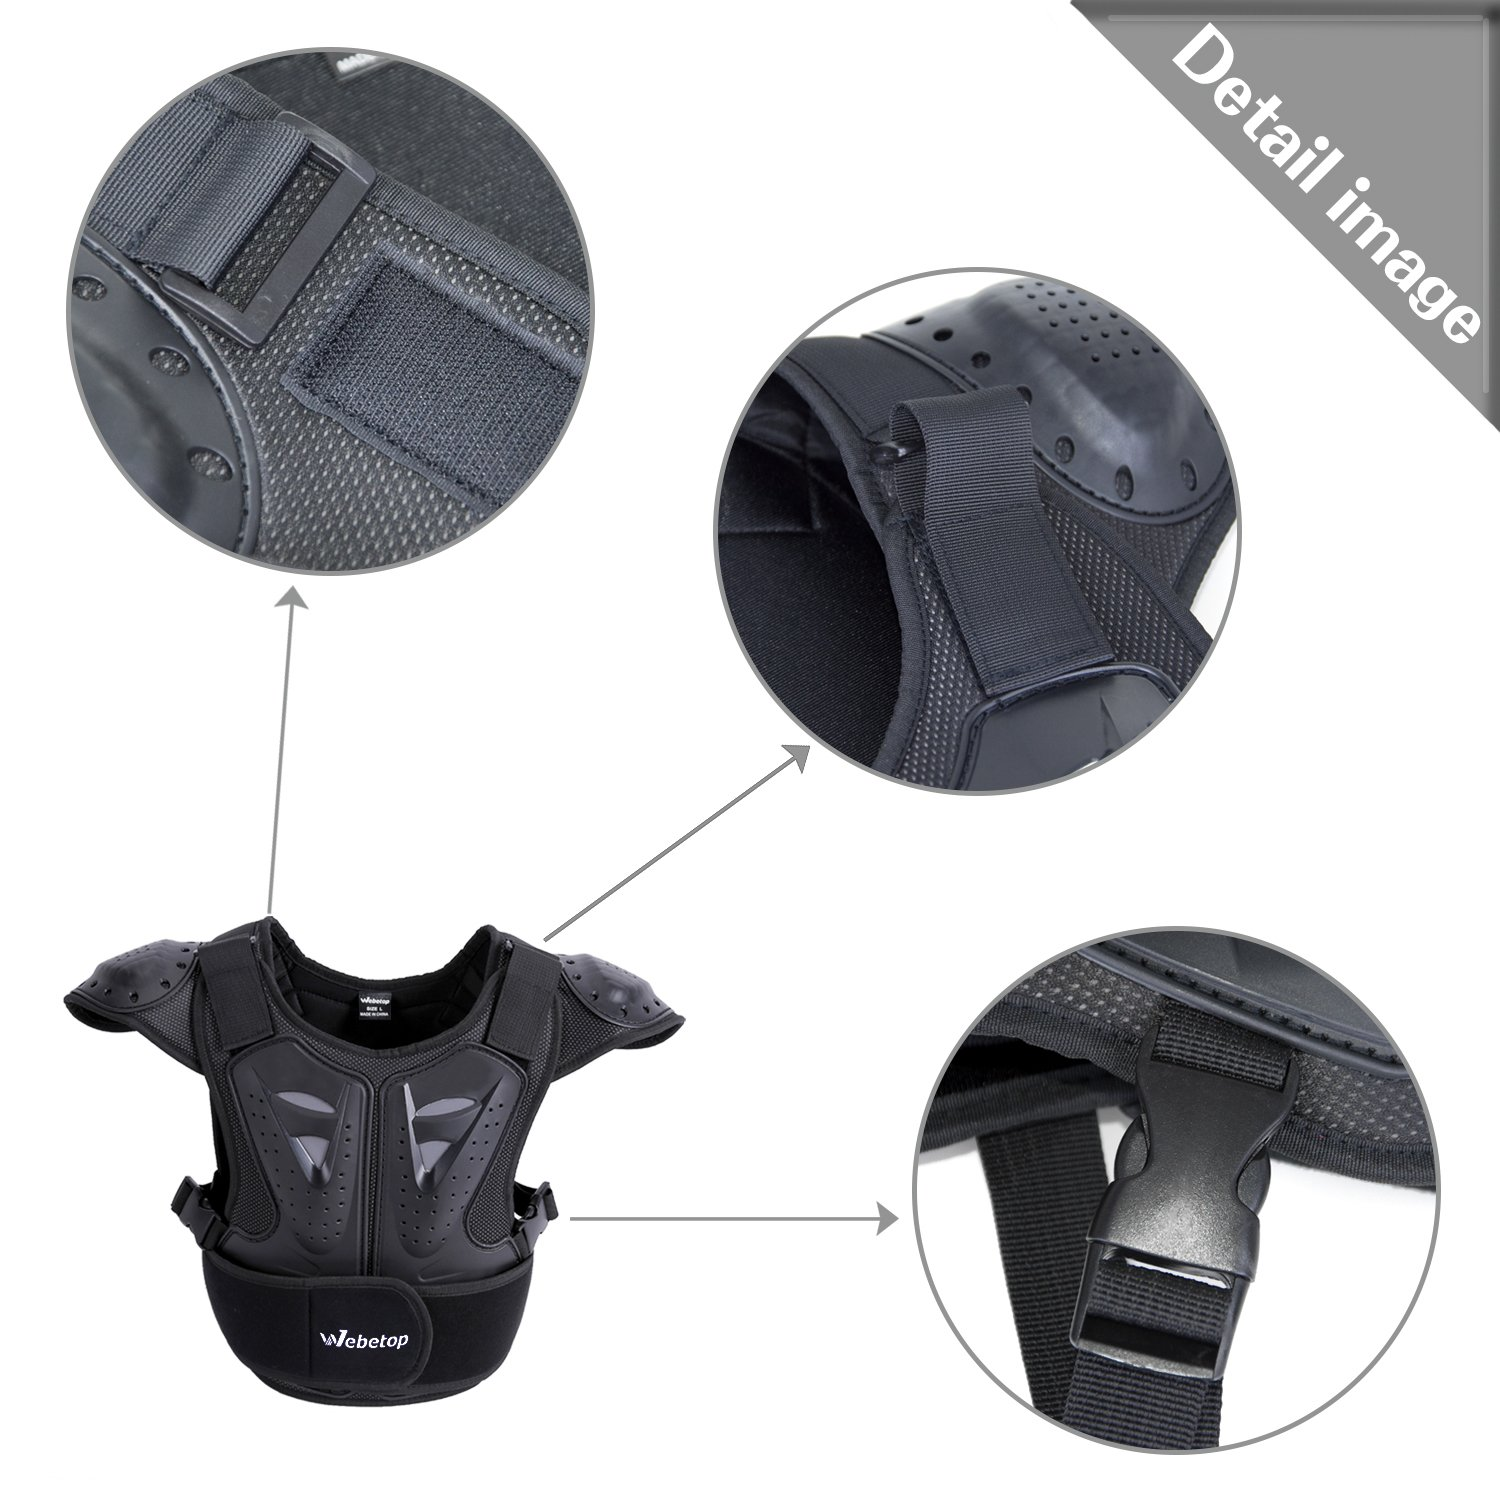 Webetop Kids Dirt Bike Body Chest Spine Protector Vest Protective for Dirtbike L by Webetop (Image #4)